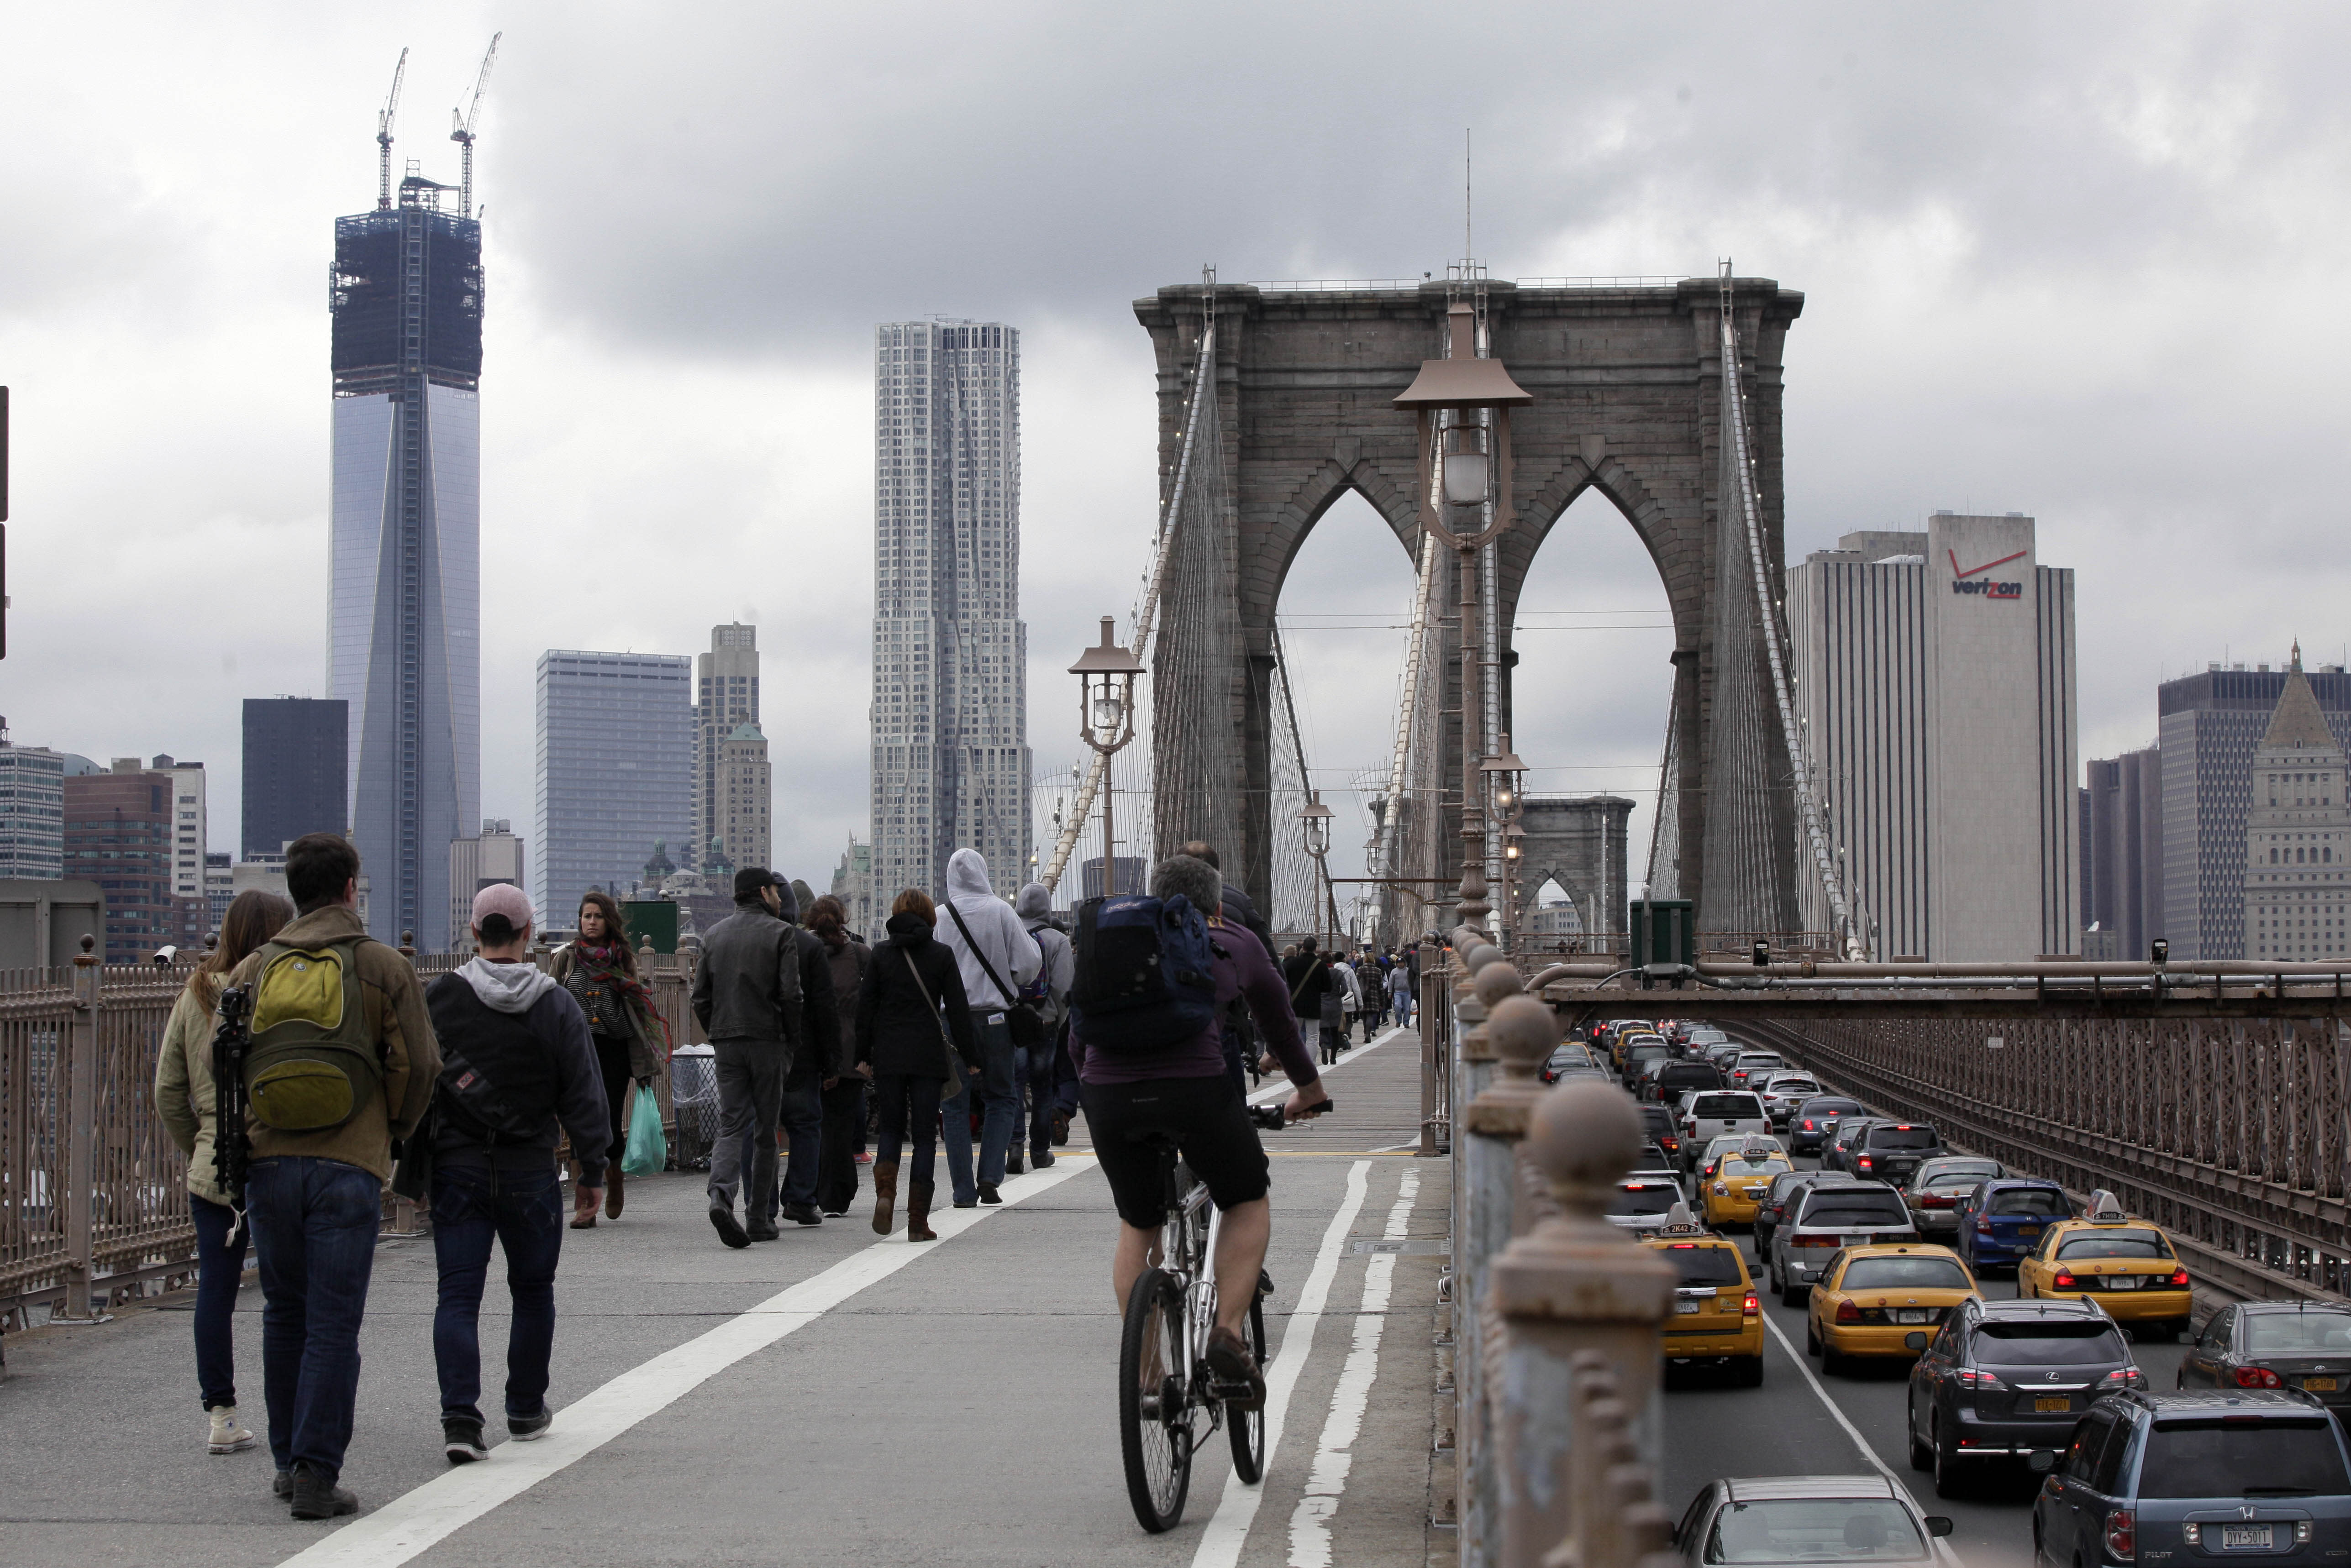 Commuters cross New York's Brooklyn Bridge, Wednesday, Oct. 31, 2012. The floodwaters that poured into New York's deepest subway tunnels may pose the biggest obstacle to the city's recovery from the worst natural disaster in the transit system's 108-year history. (AP Photo/Richard Drew)